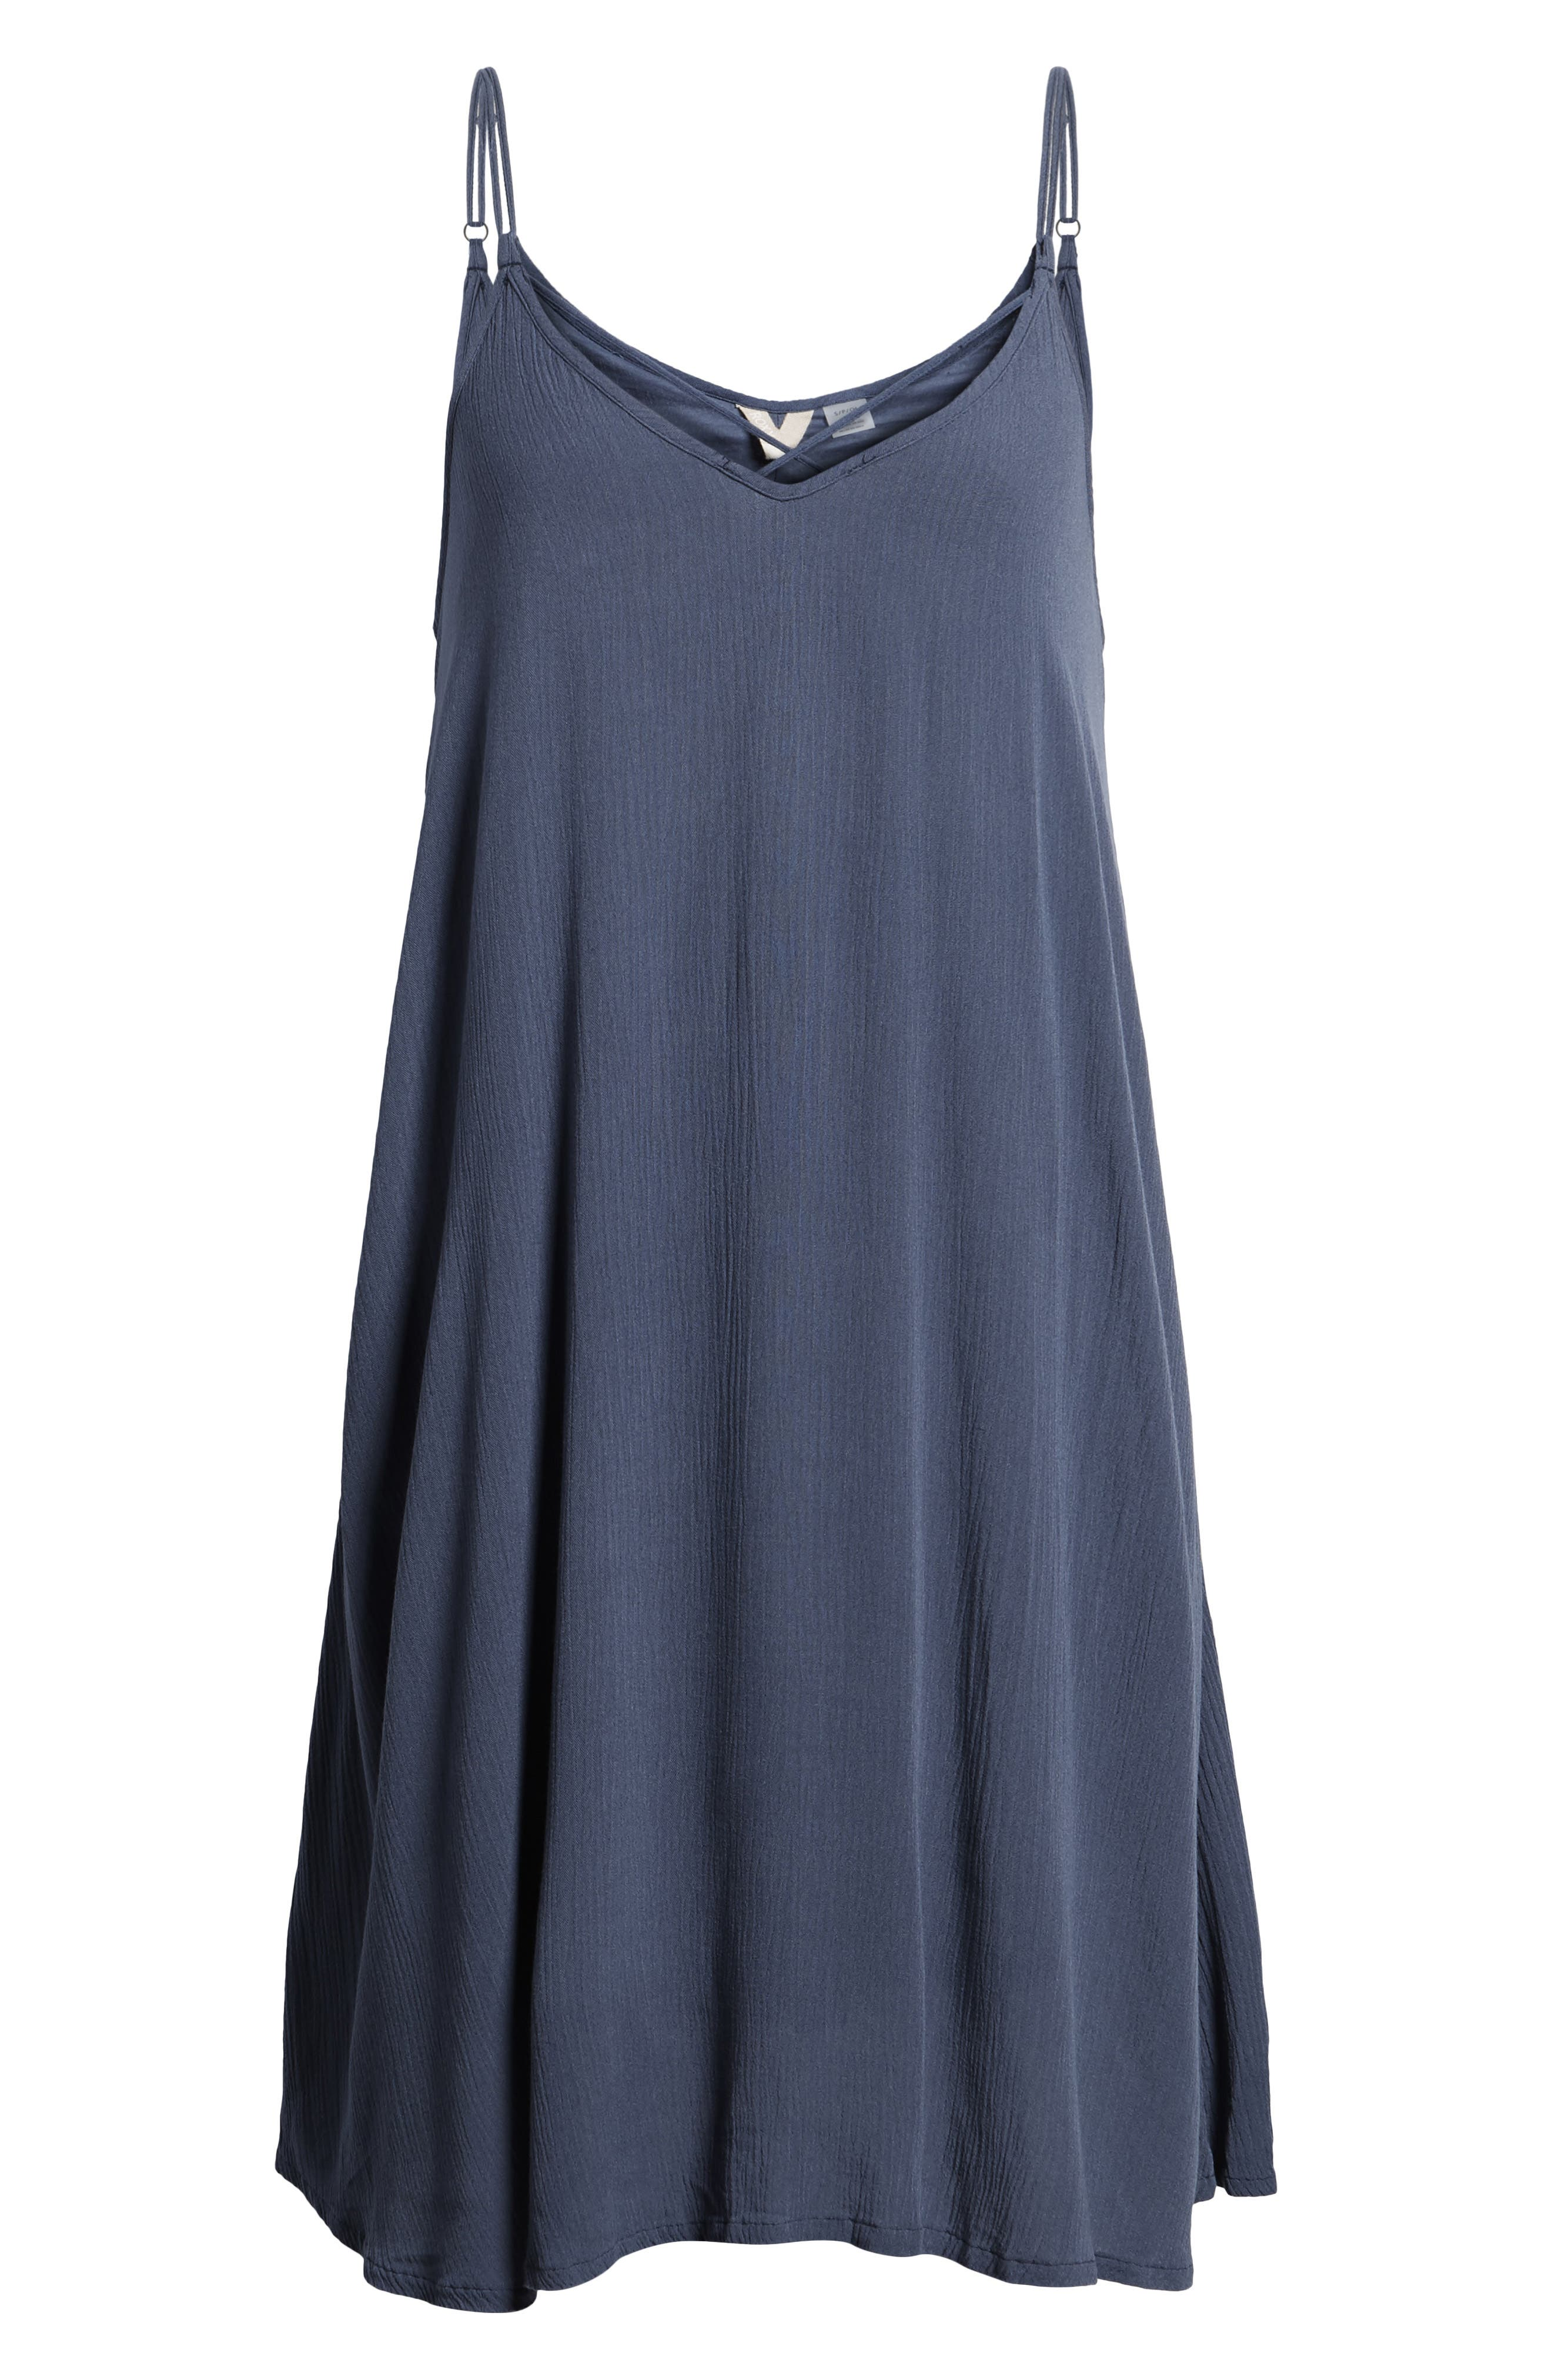 Half Year Old Trapeze Dress,                             Alternate thumbnail 7, color,                             Crown Blue